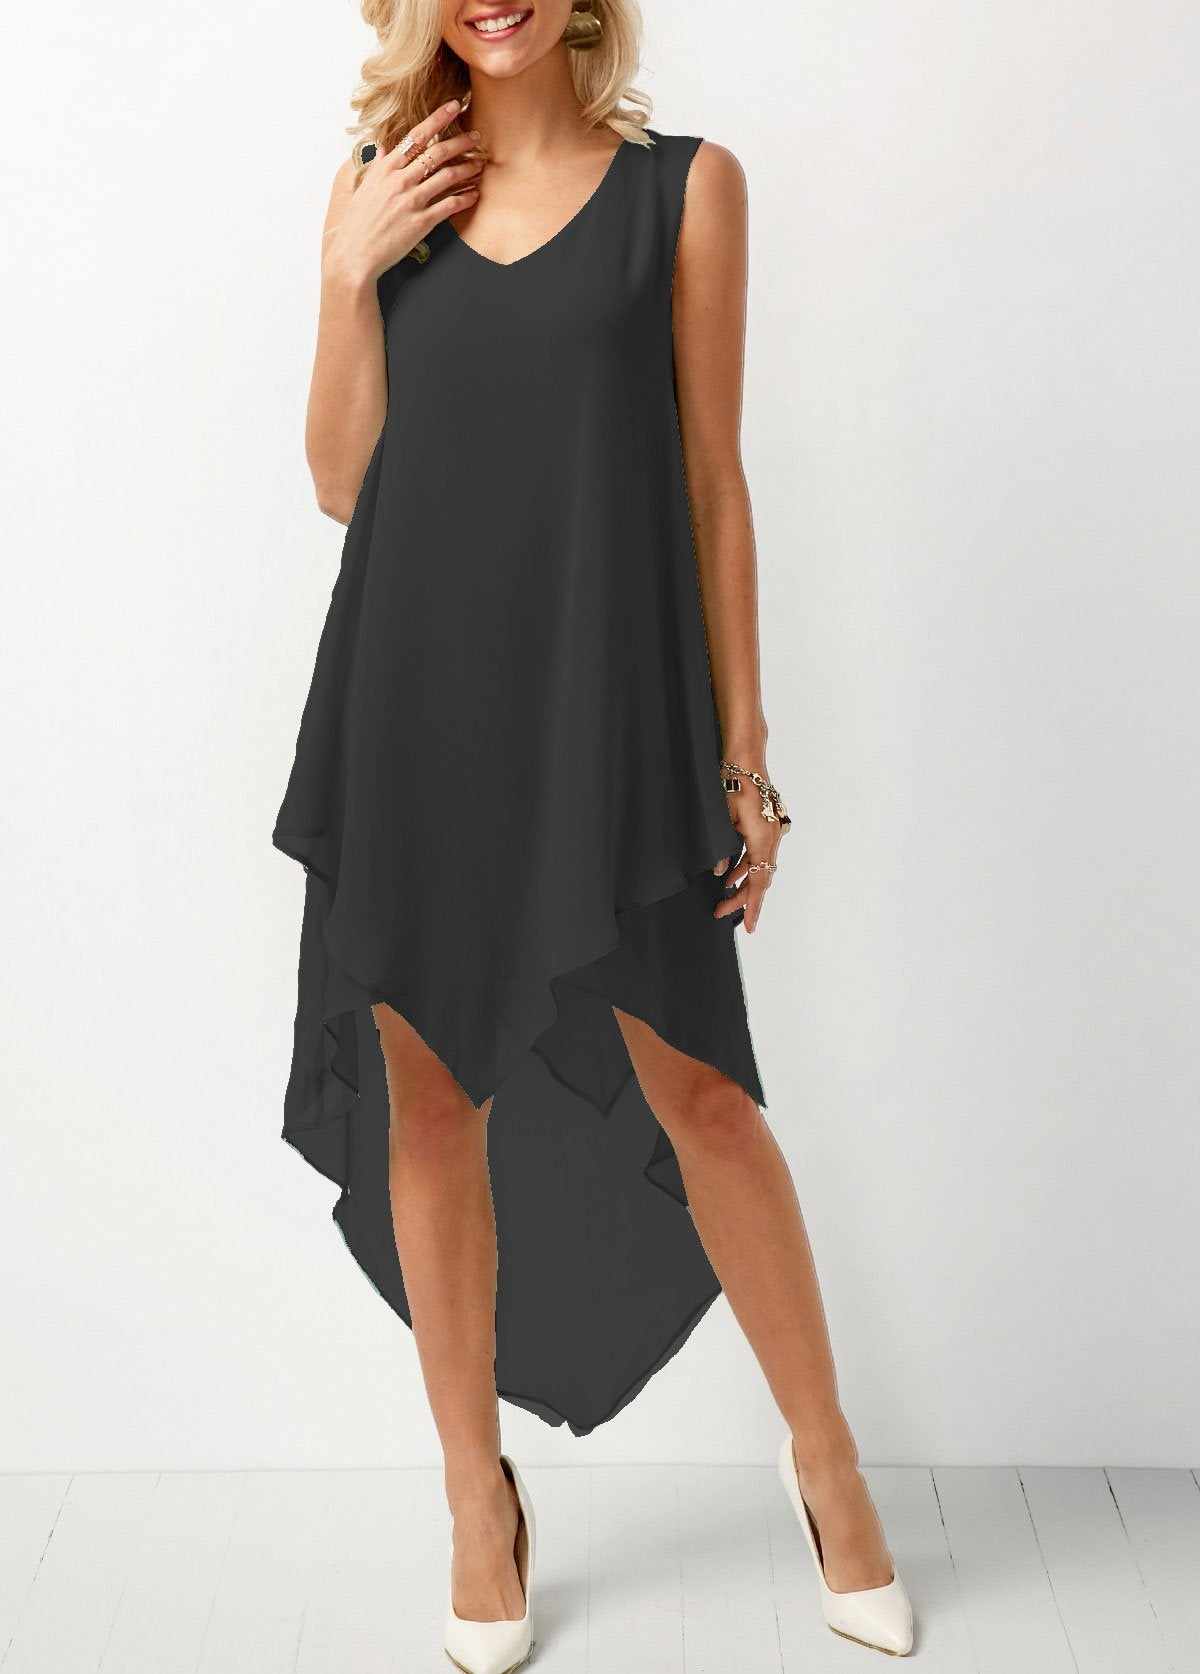 Joana - Airy Chiffon Dress - Black / S (4-6 US) (8 UK)